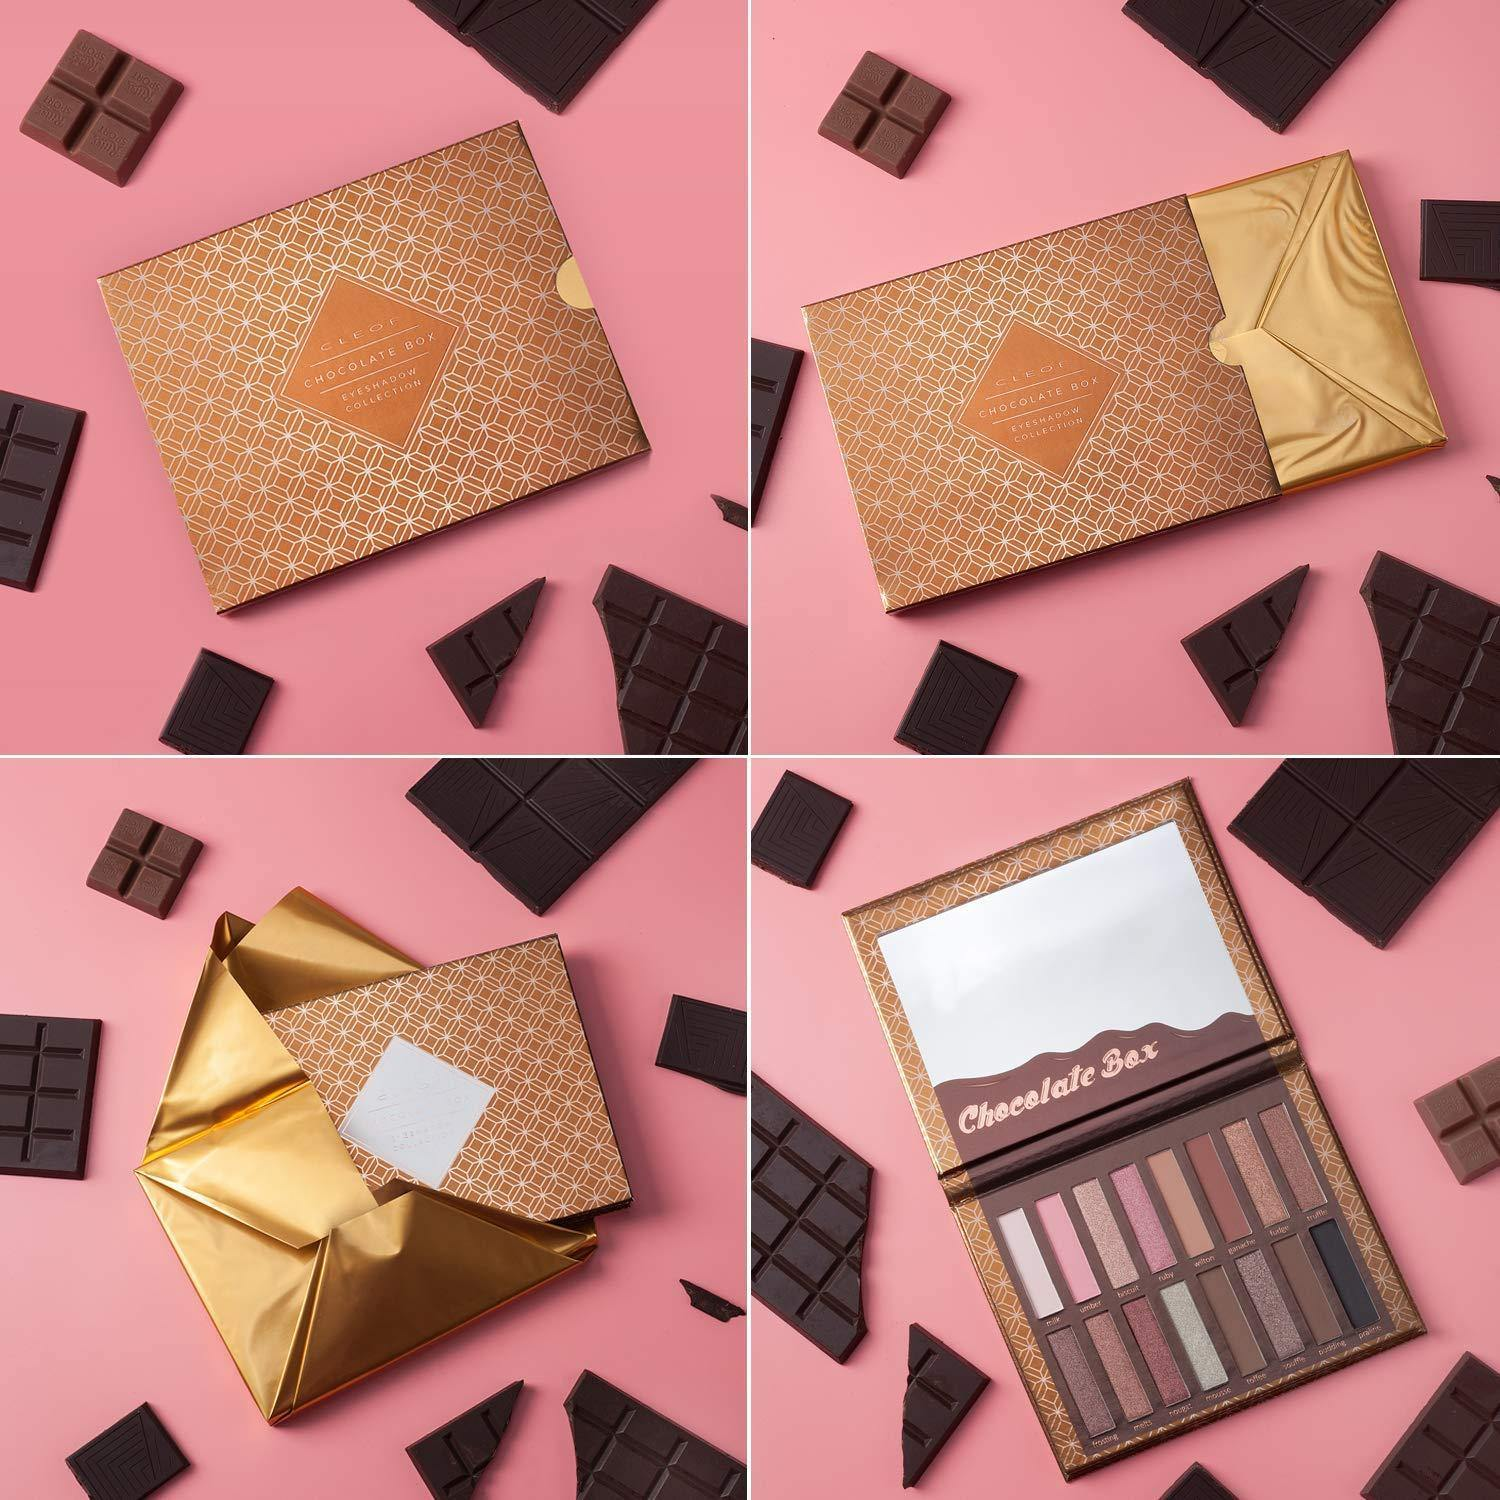 Chocolate Box Eyeshadow Palette